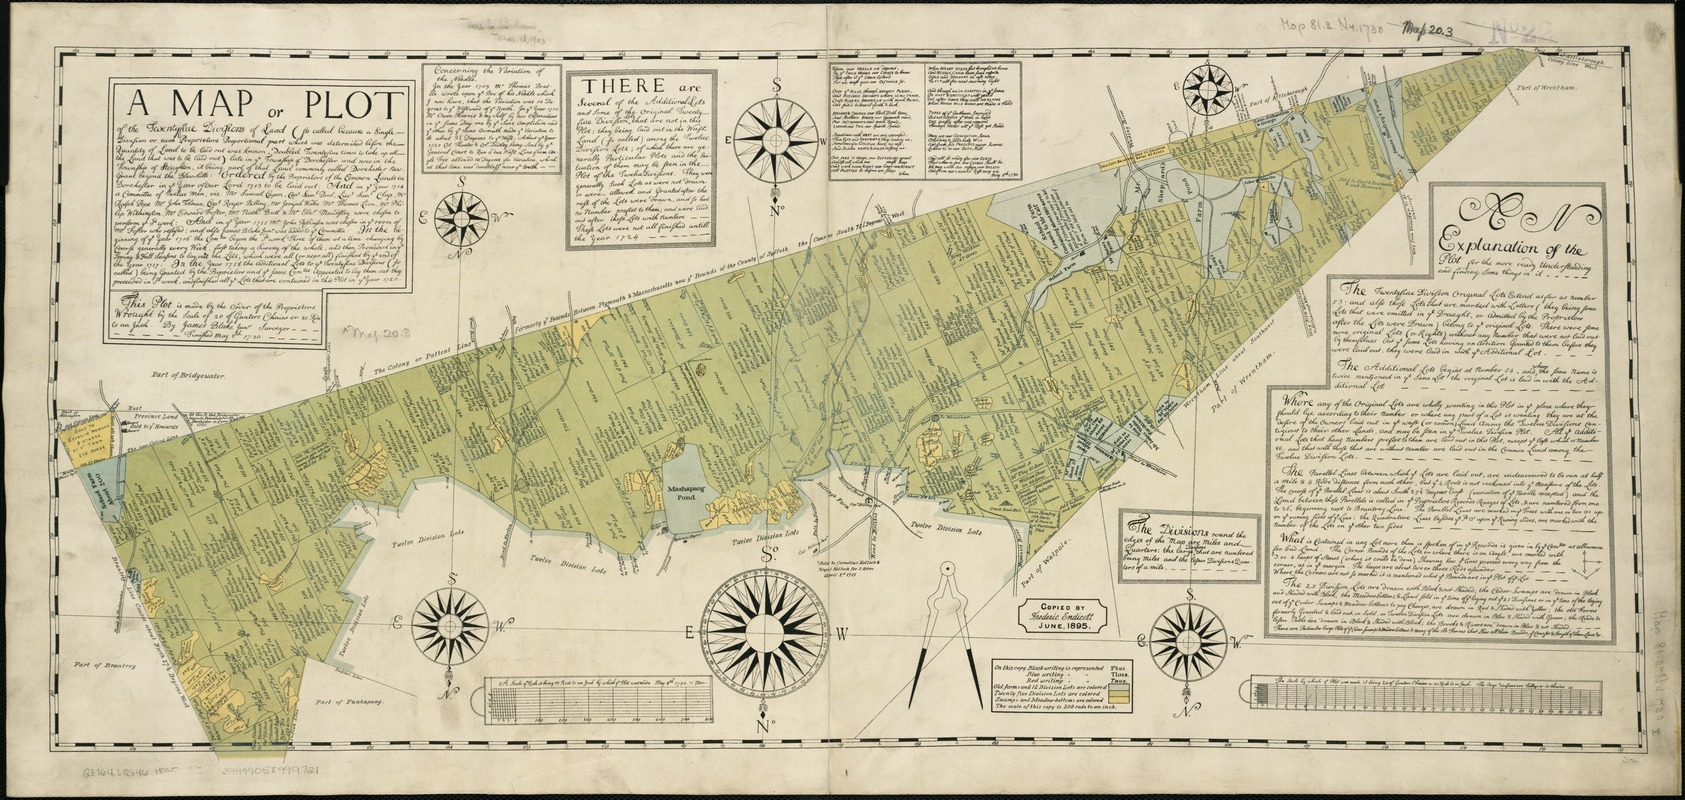 A map or plot of the twenty-five divisions of land ... late in the Township of Dorchester and now in the Township of Stoughton, it being part of that land commonly called Dorchester New-Grant beyond the Blew-hills ... finished May 8th, 1730